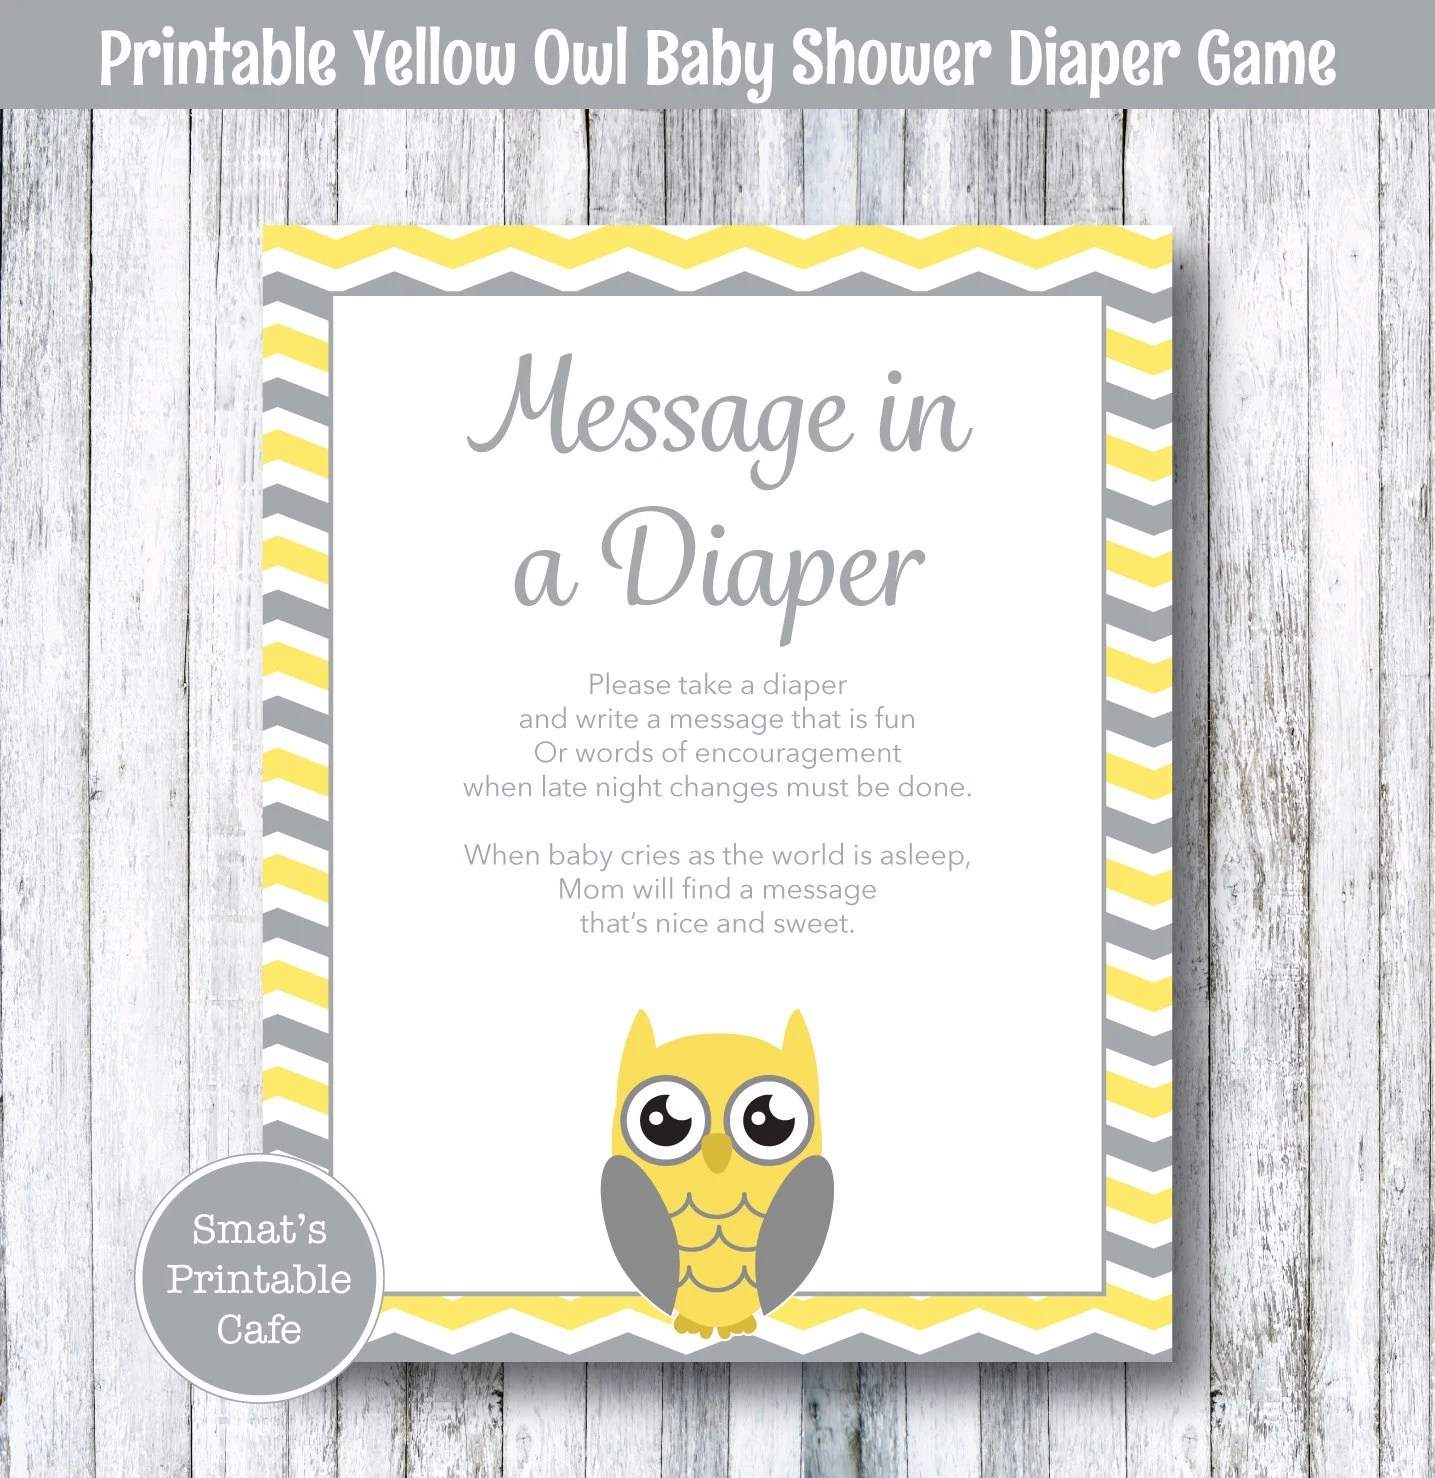 Yellow Owl Baby Shower Diaper Message Game PRINTABLE Chevron Etsy